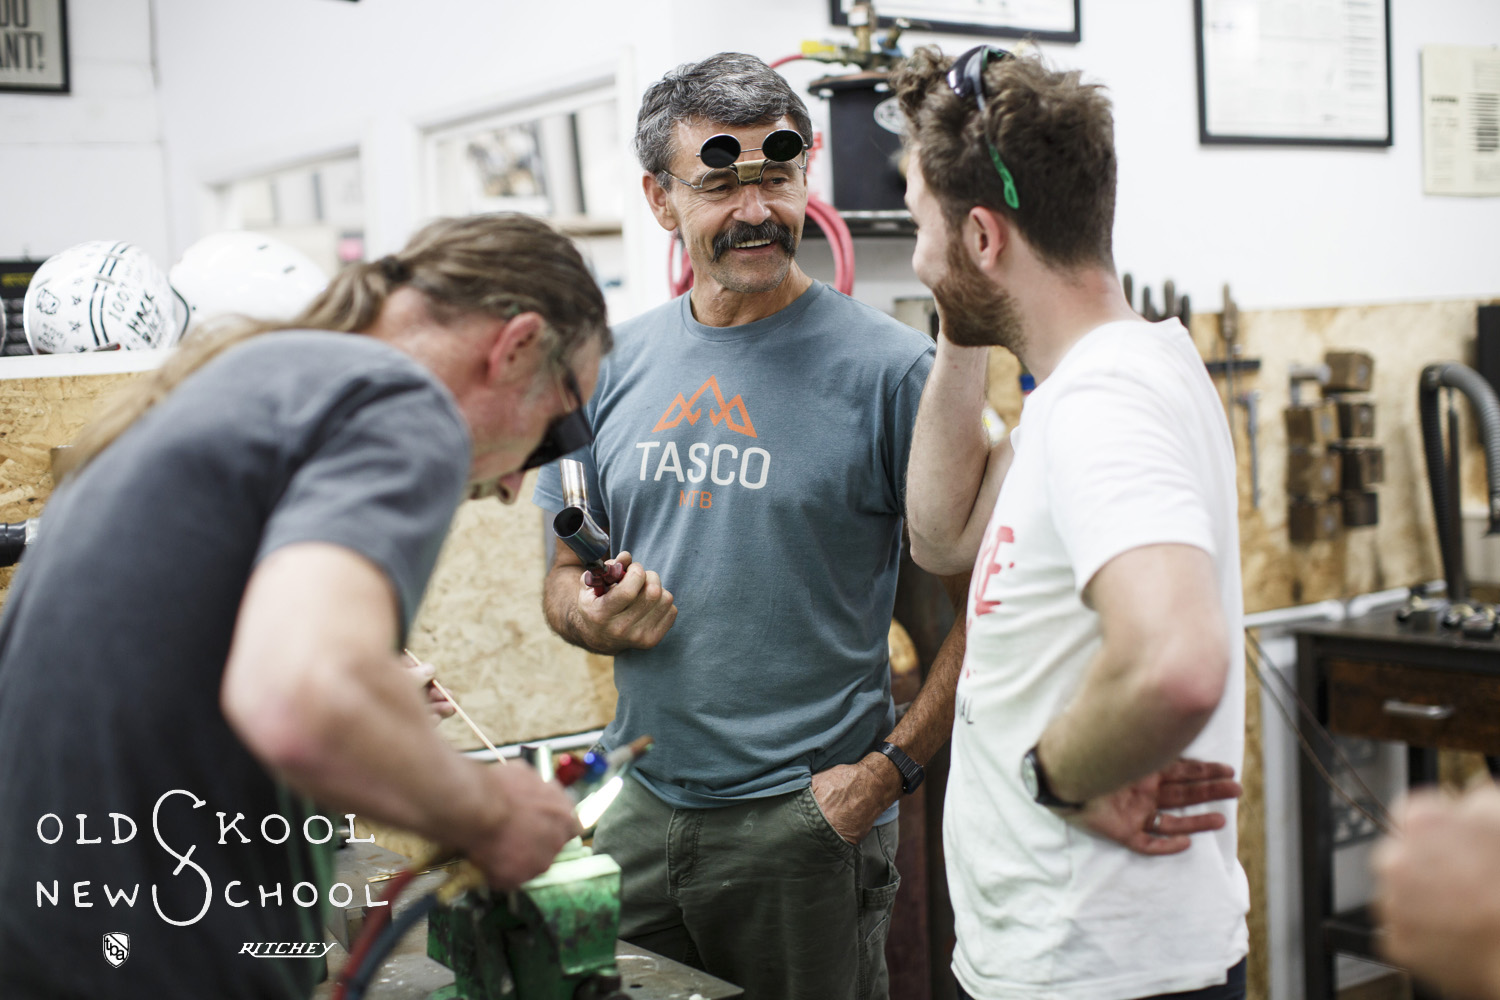 Tom Ritchey Bicycle Academy photographs